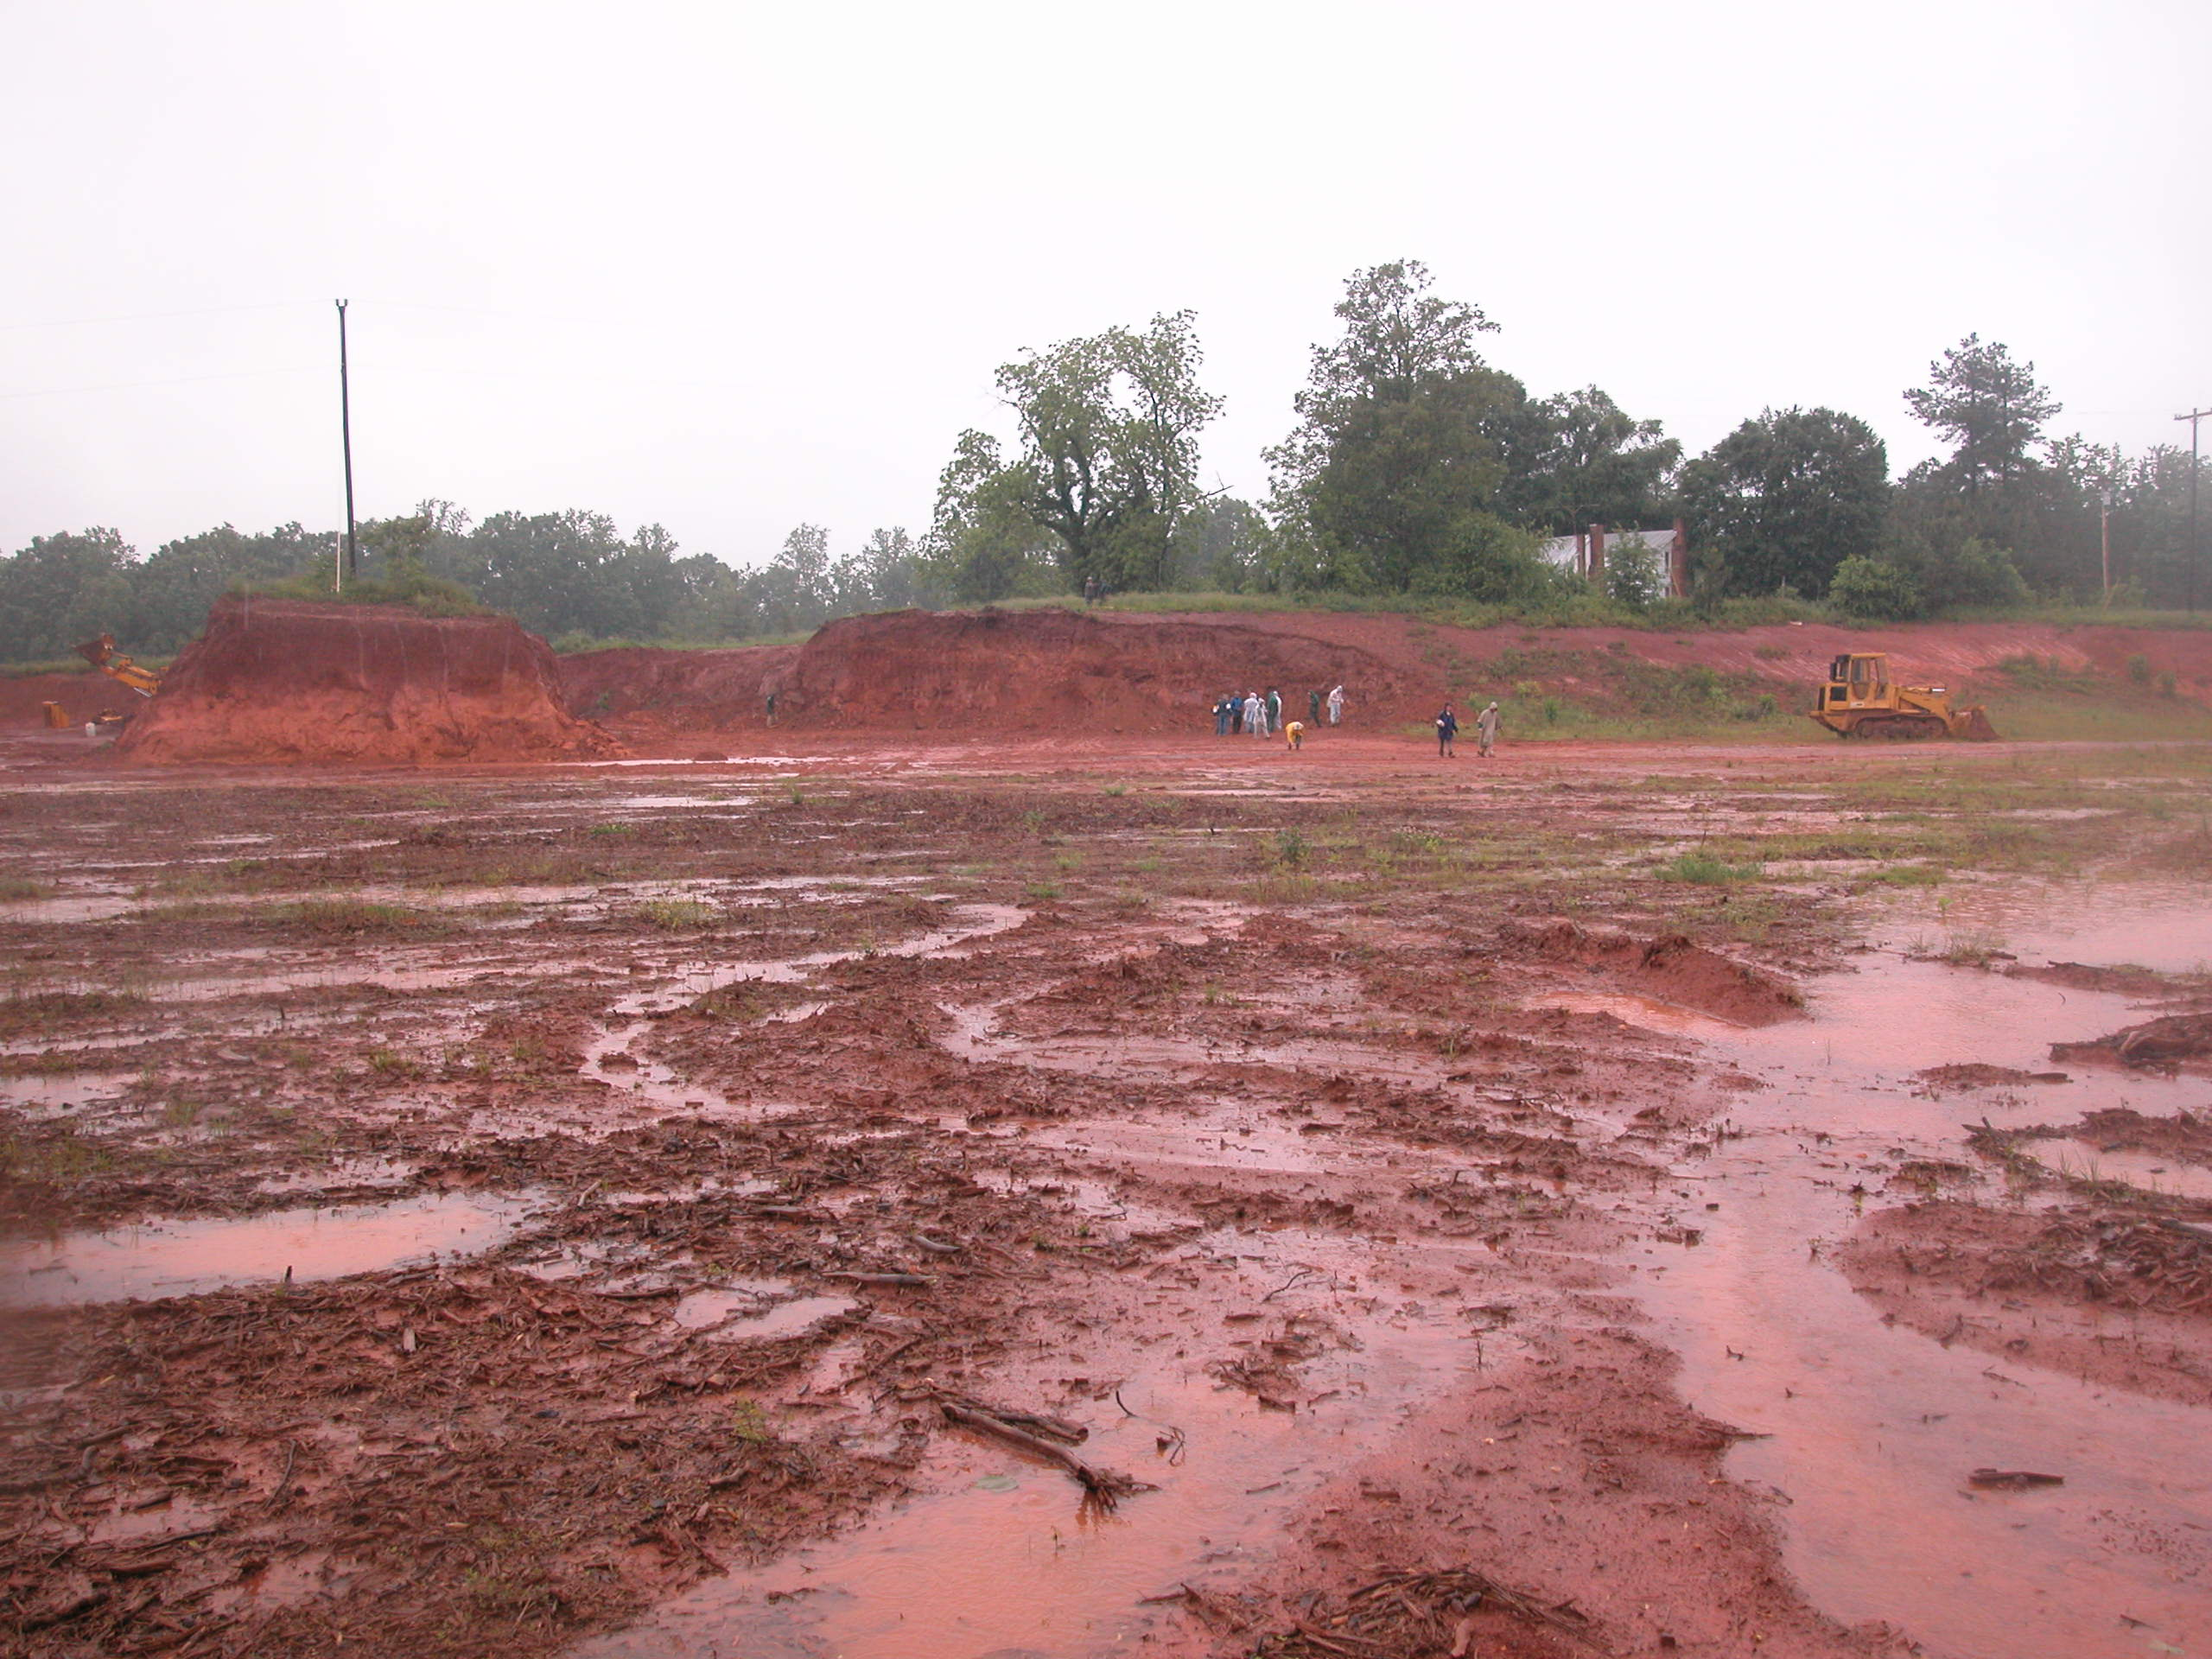 File:Nc-red-clay-soil-2.jpg - Wikipedia